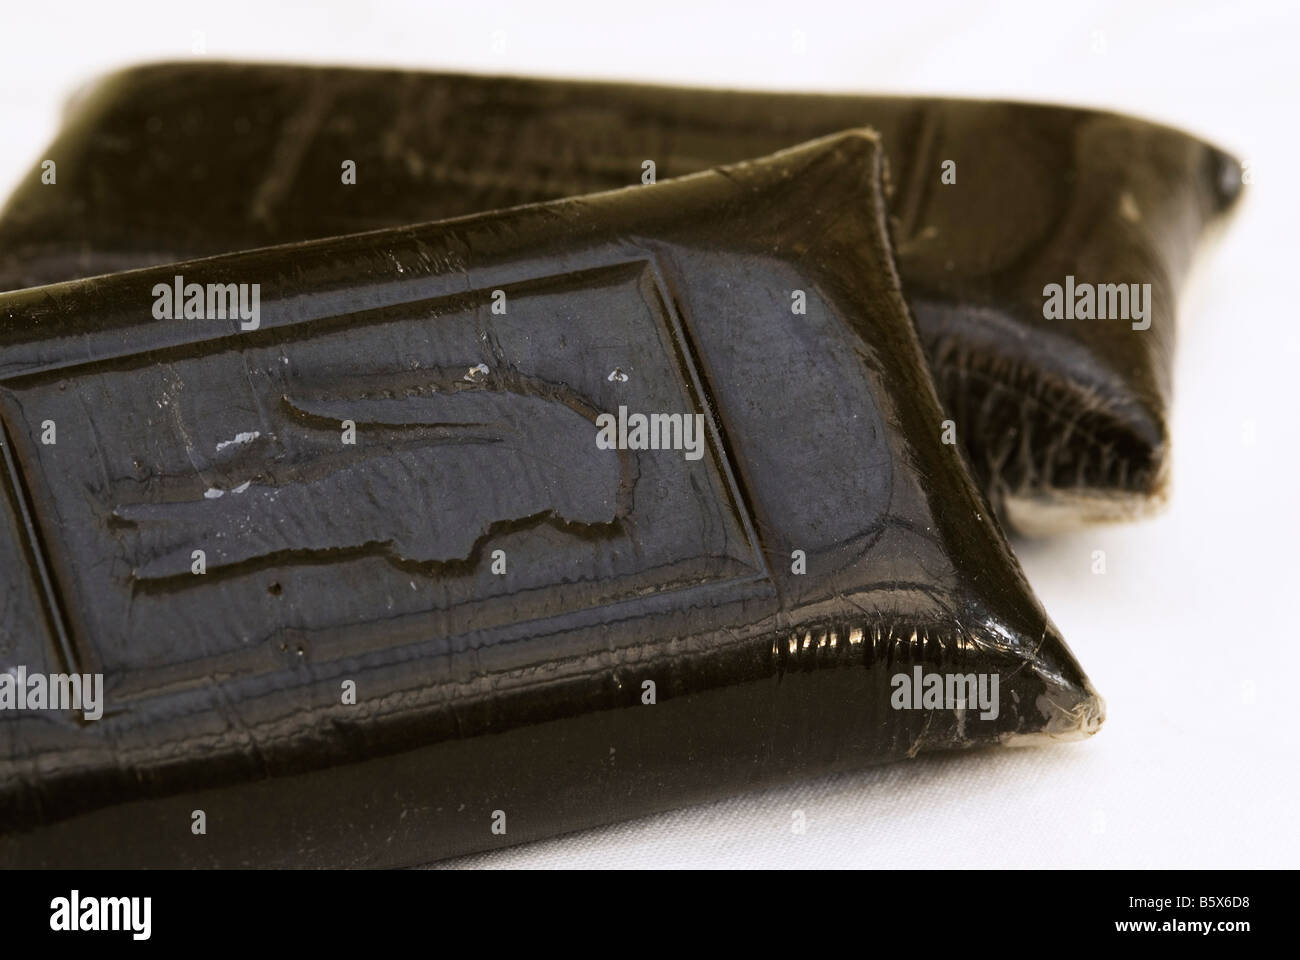 Two Nine Ounce Bars of Soapbar Hashish Embossed with Alligator Lacoste Logo - Stock Image